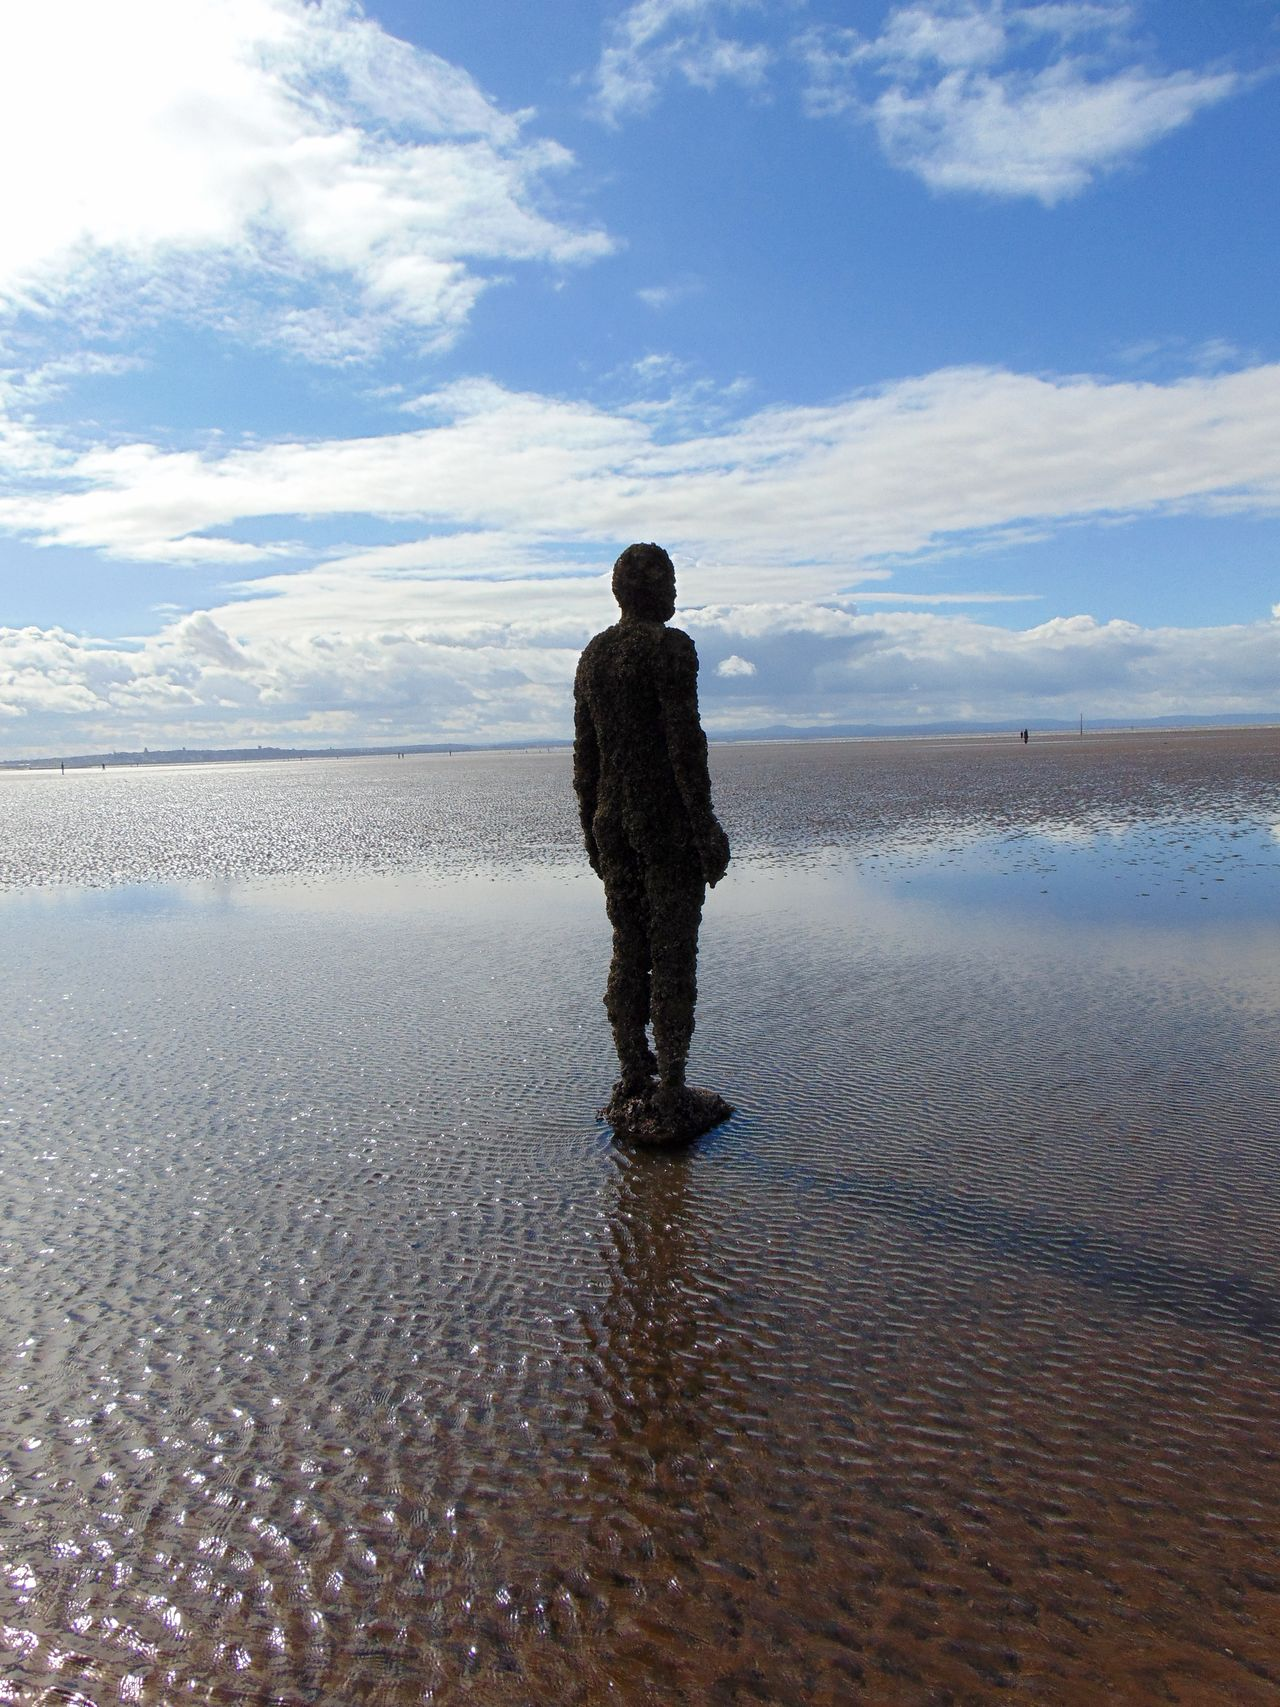 Beach Beauty In Nature Crosby Beach Full Length Horizon Over Water Leisure Activity Lifestyles Nature Rear View Sand Scenics Sea Shore Sky Standing Tranquil Scene Tranquility Vacations Water